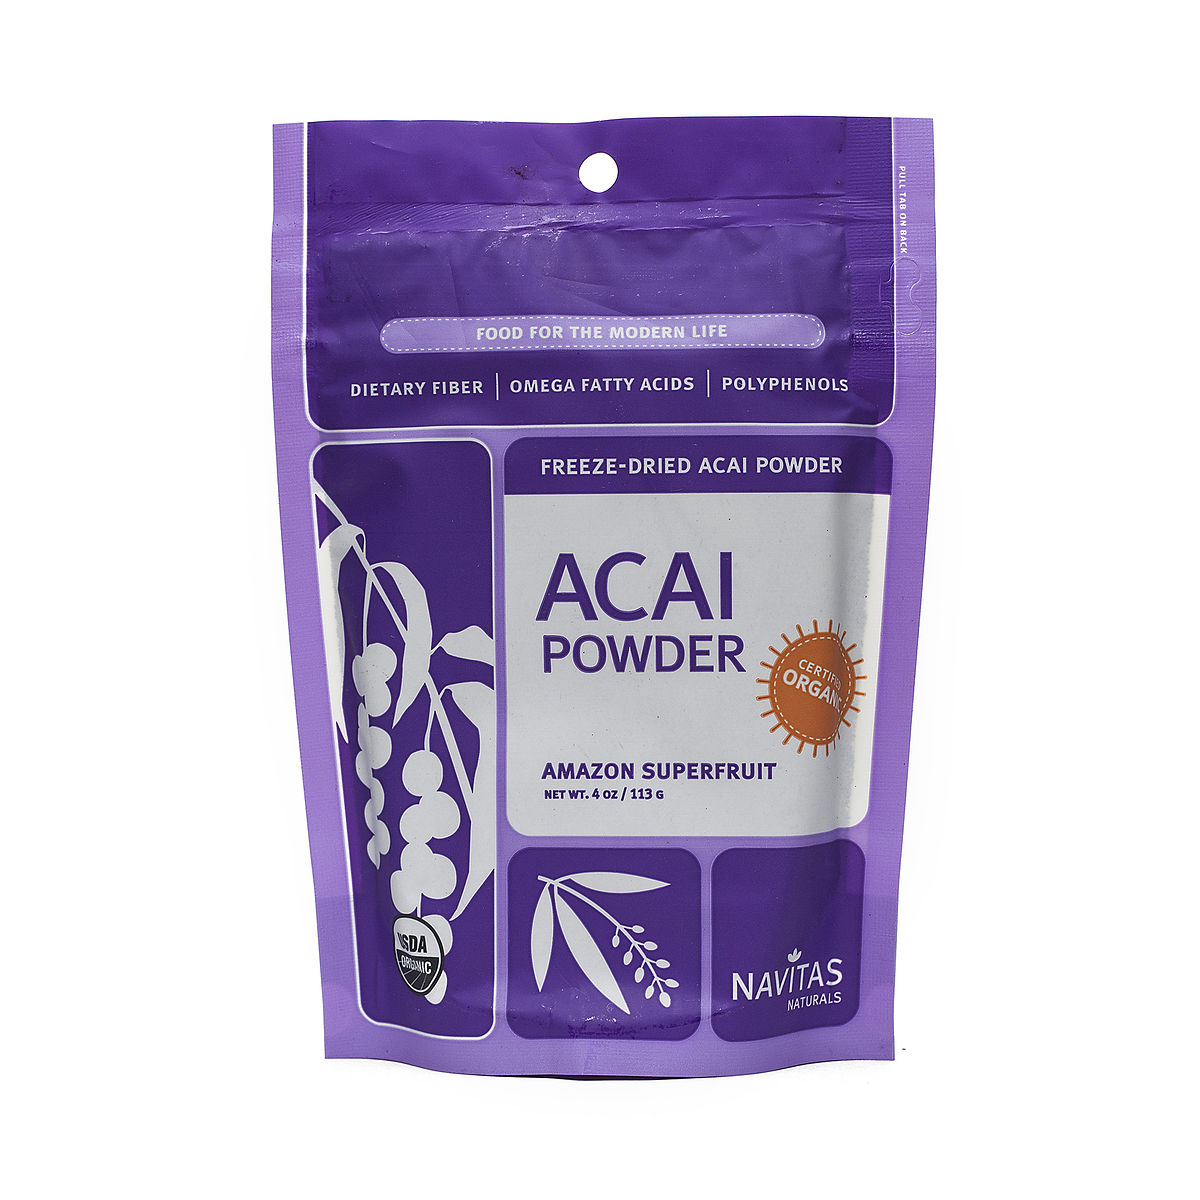 Navitas Naturals ACAI POWDER from Thrive Market